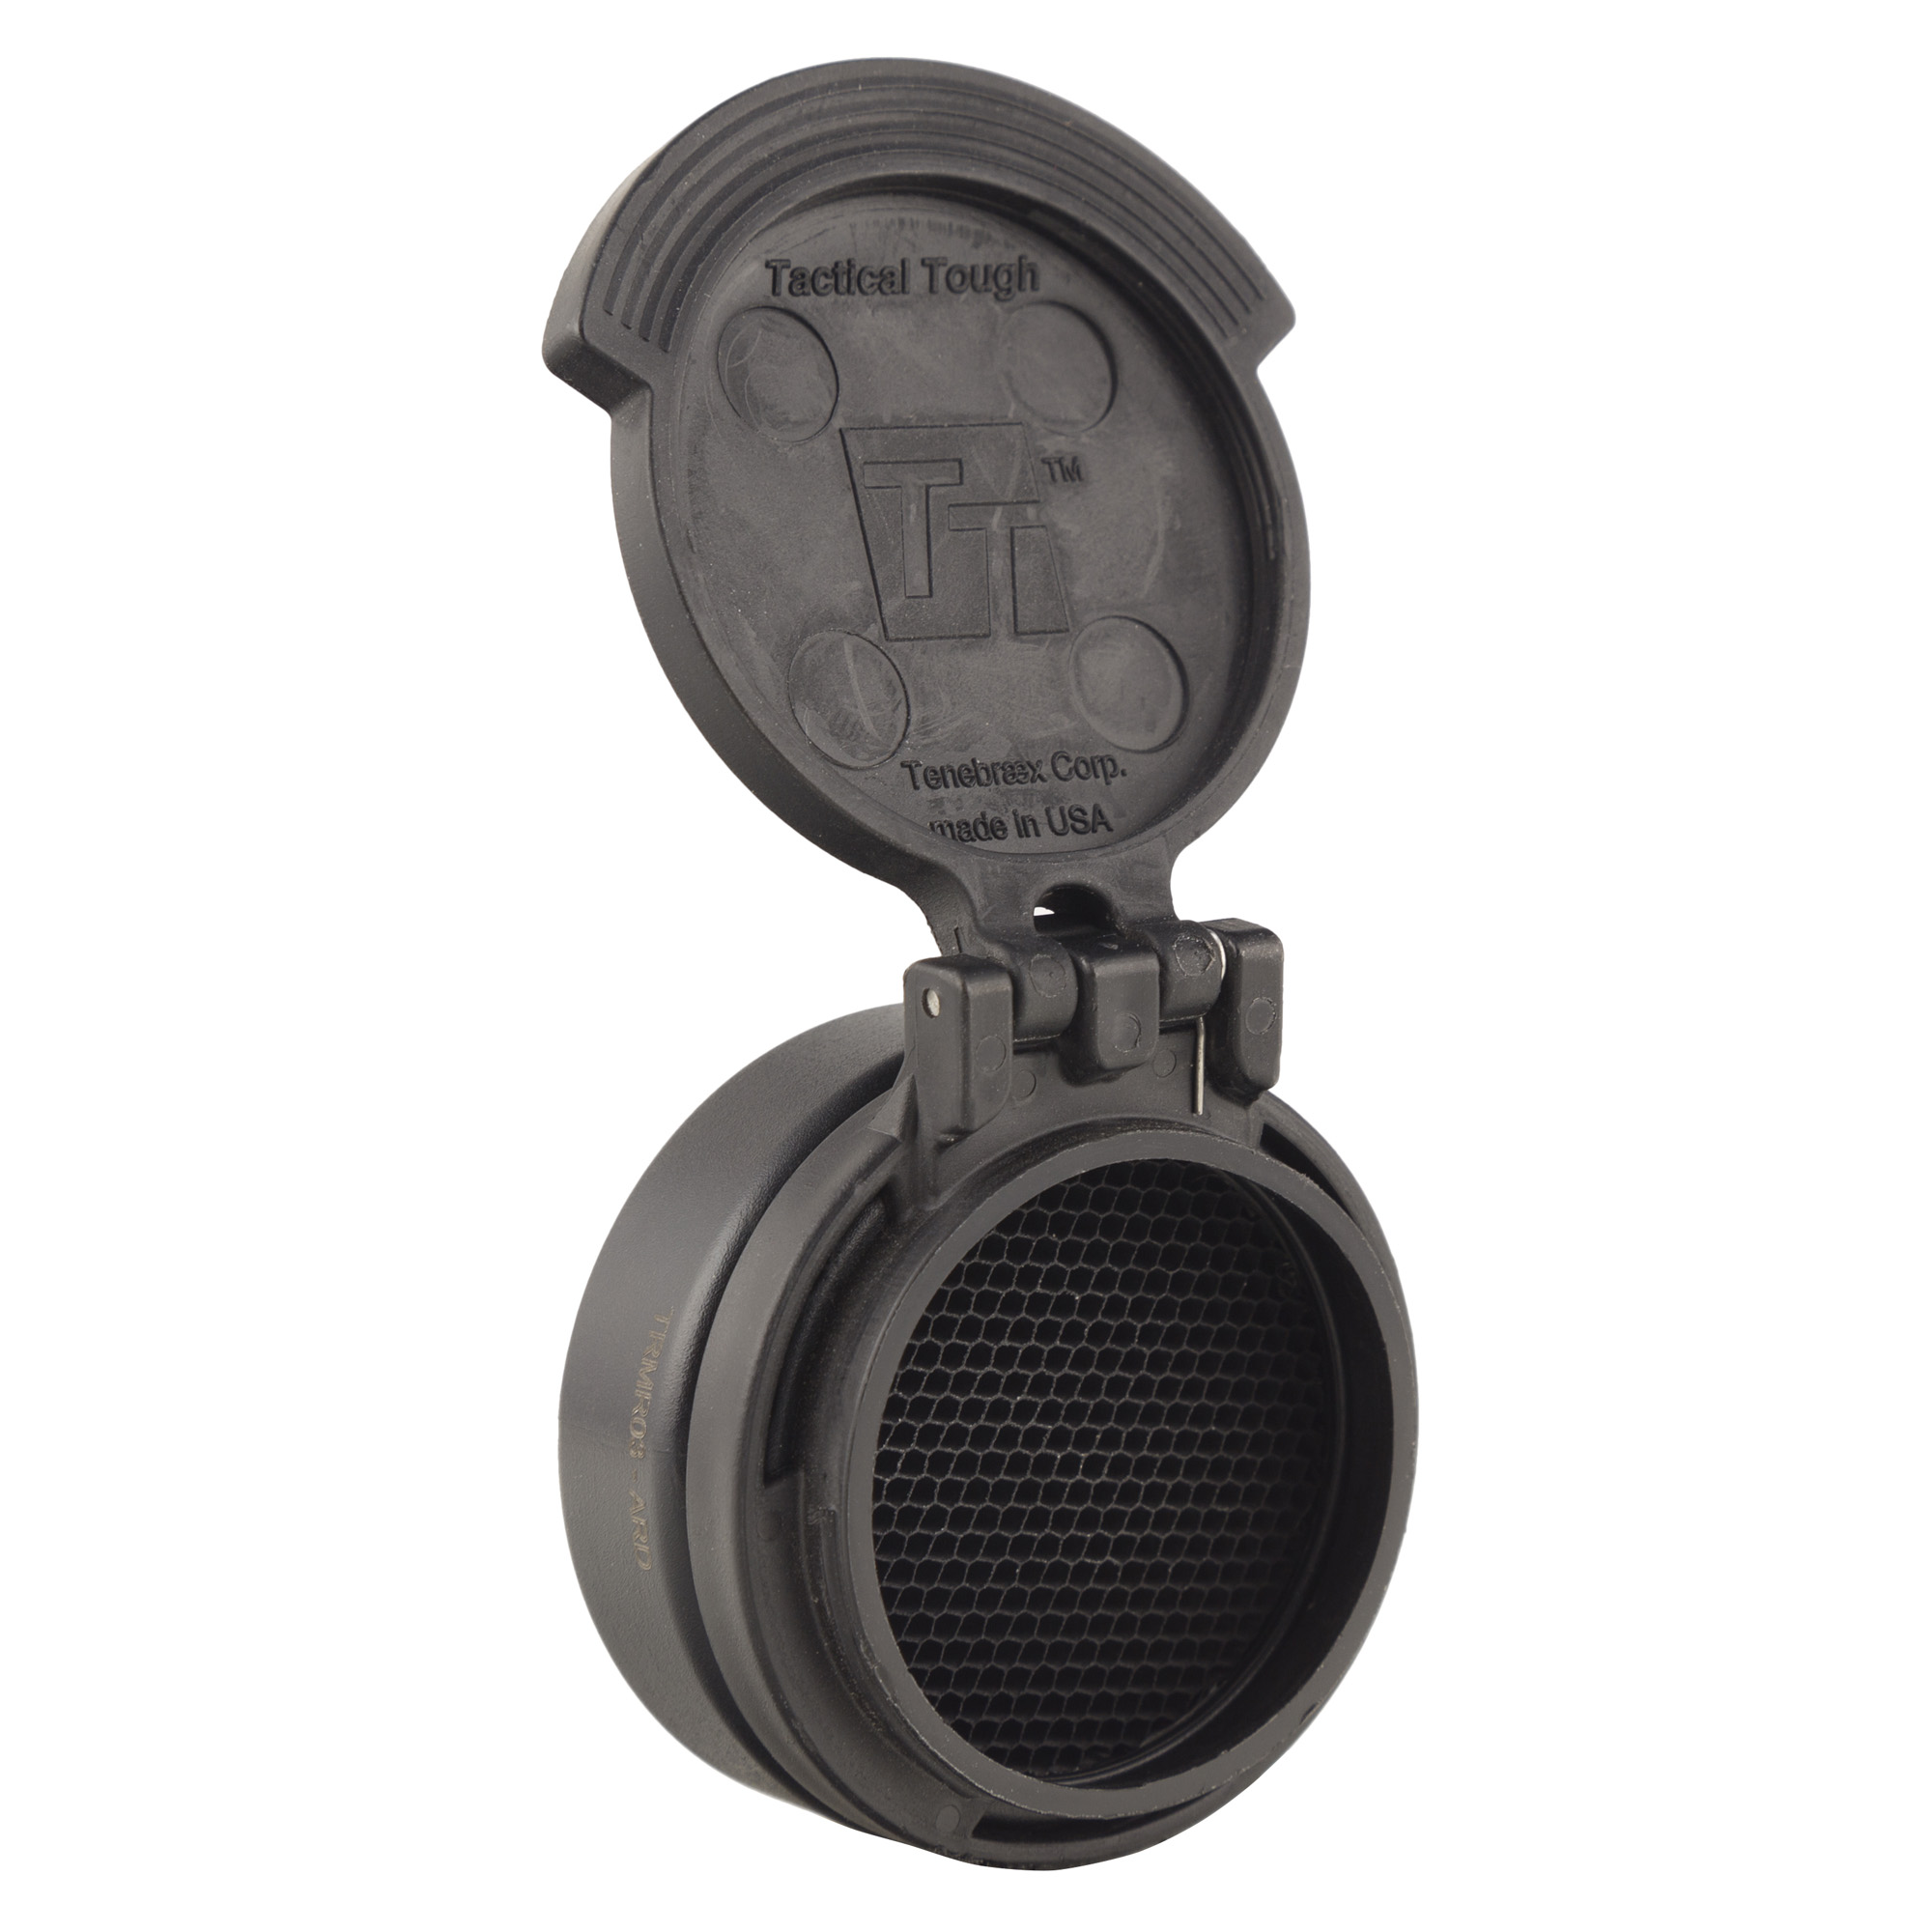 Features a durable spring loaded flip cap for protecting the objective lens of the Trijicon MRO(R) and an ARD (Anti-Reflective Device) for shielding the forward light emission from the lens.